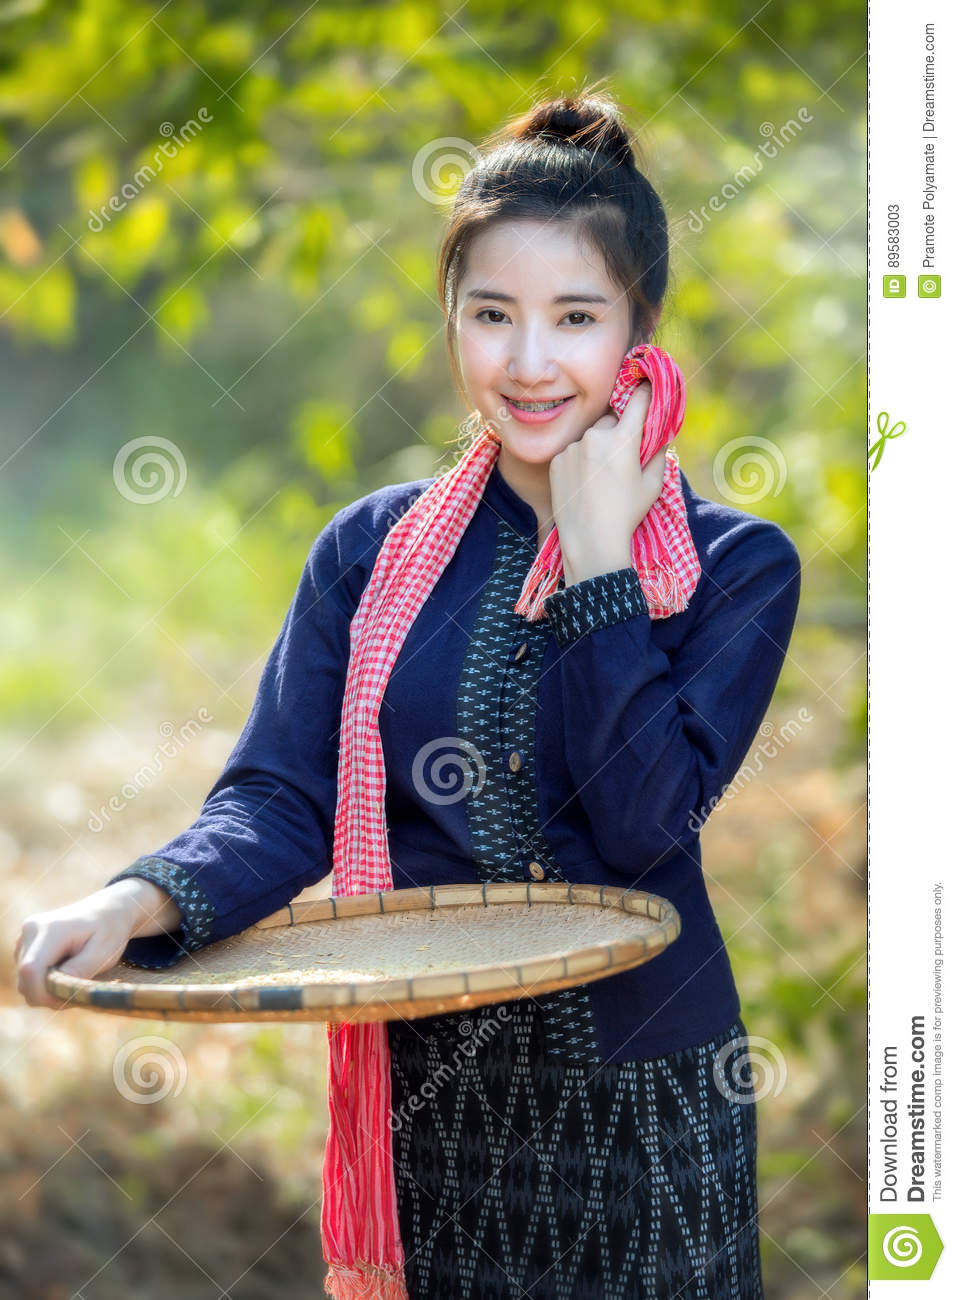 Beautiful Woman In Laos Costume.Lao Traditional Dress Of A